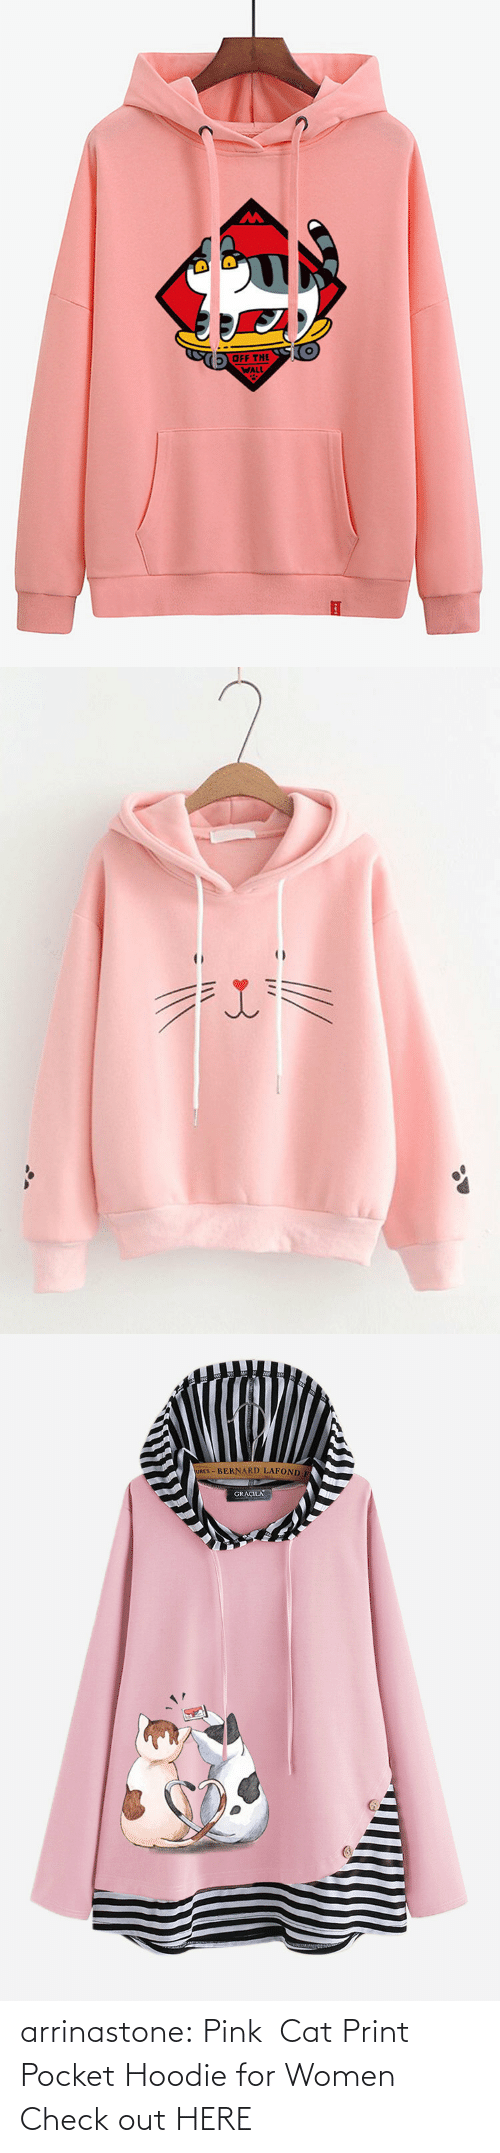 bit.ly: arrinastone: Pink  Cat Print Pocket Hoodie for Women Check out HERE